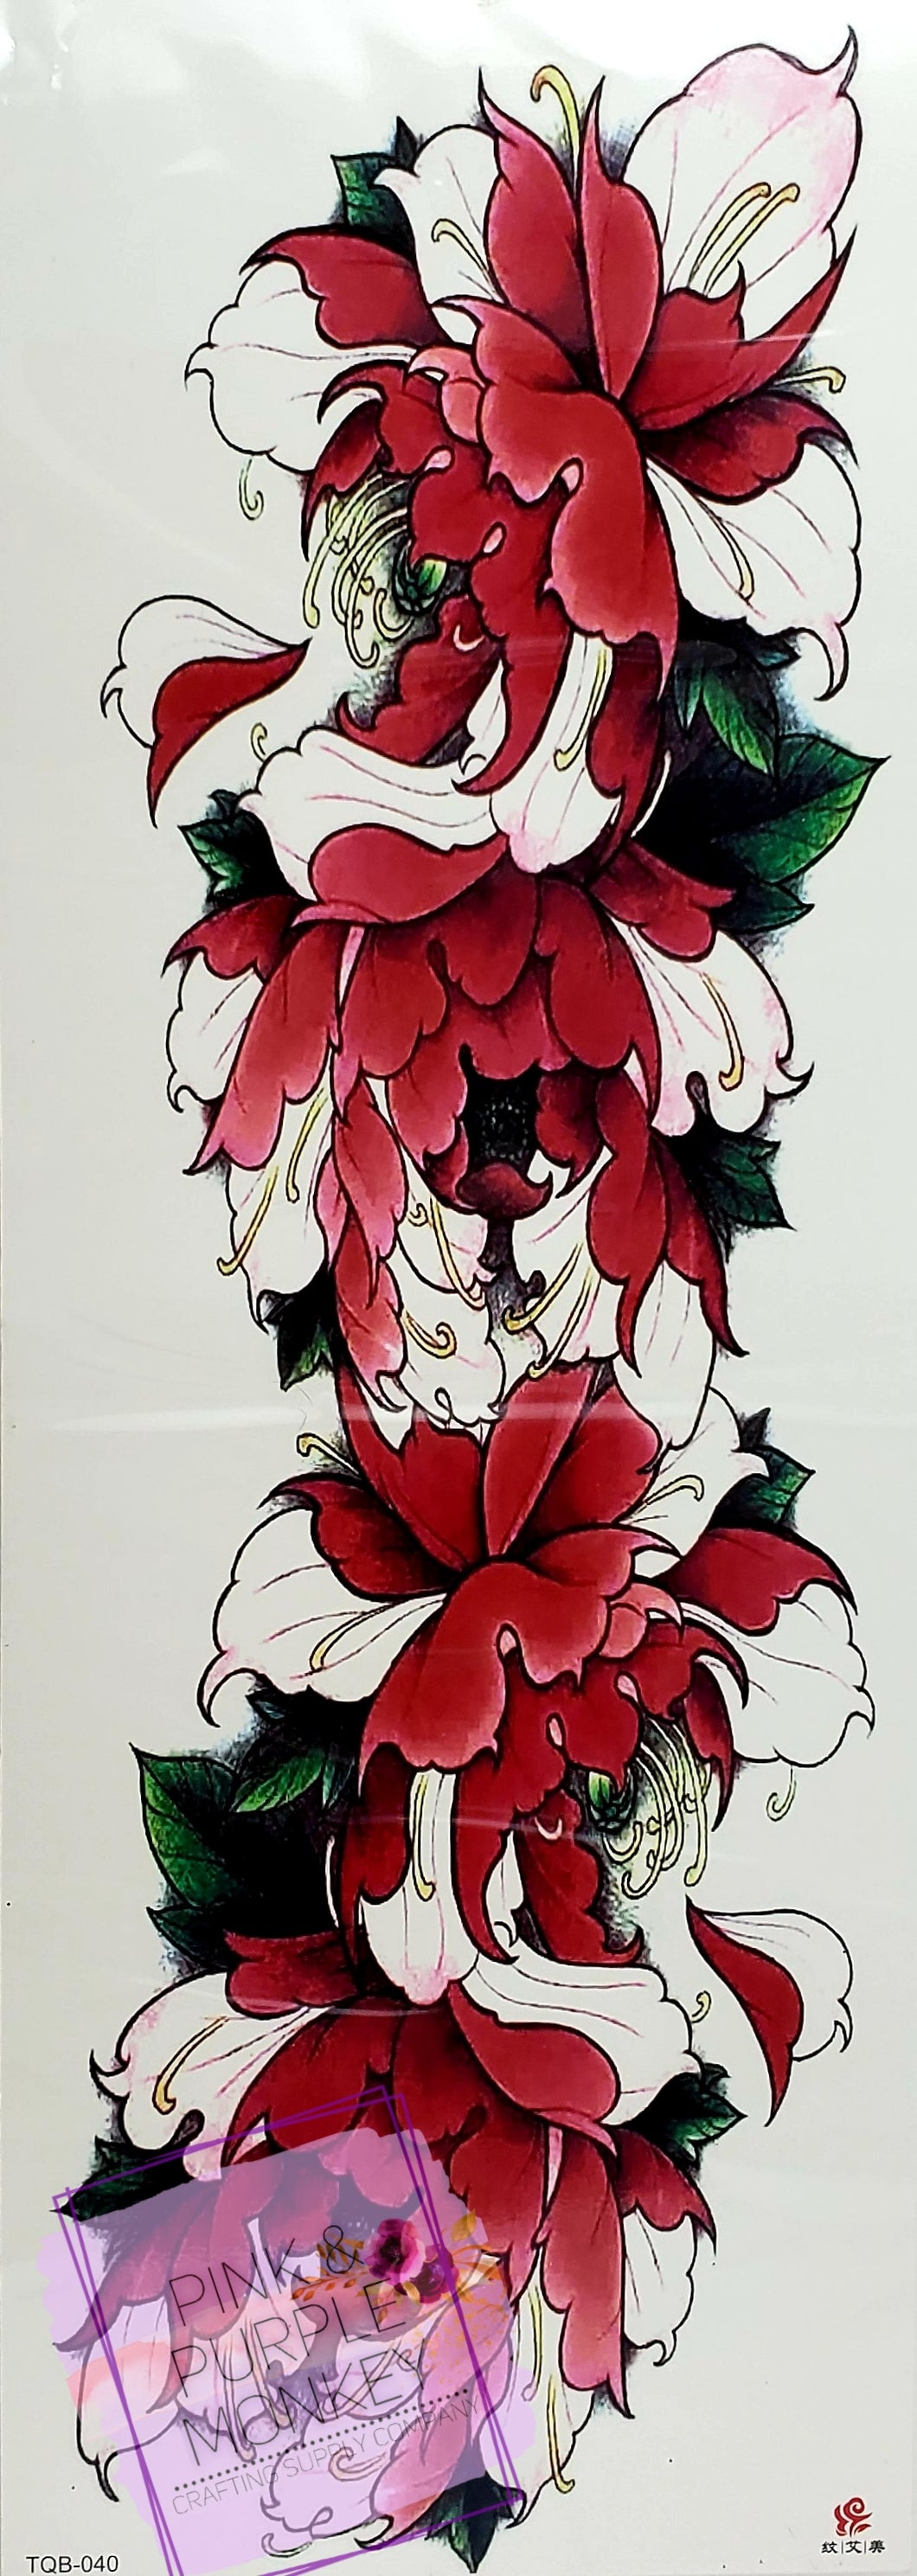 Dark Pink Tropical Floral Tattoo - 18 x 6